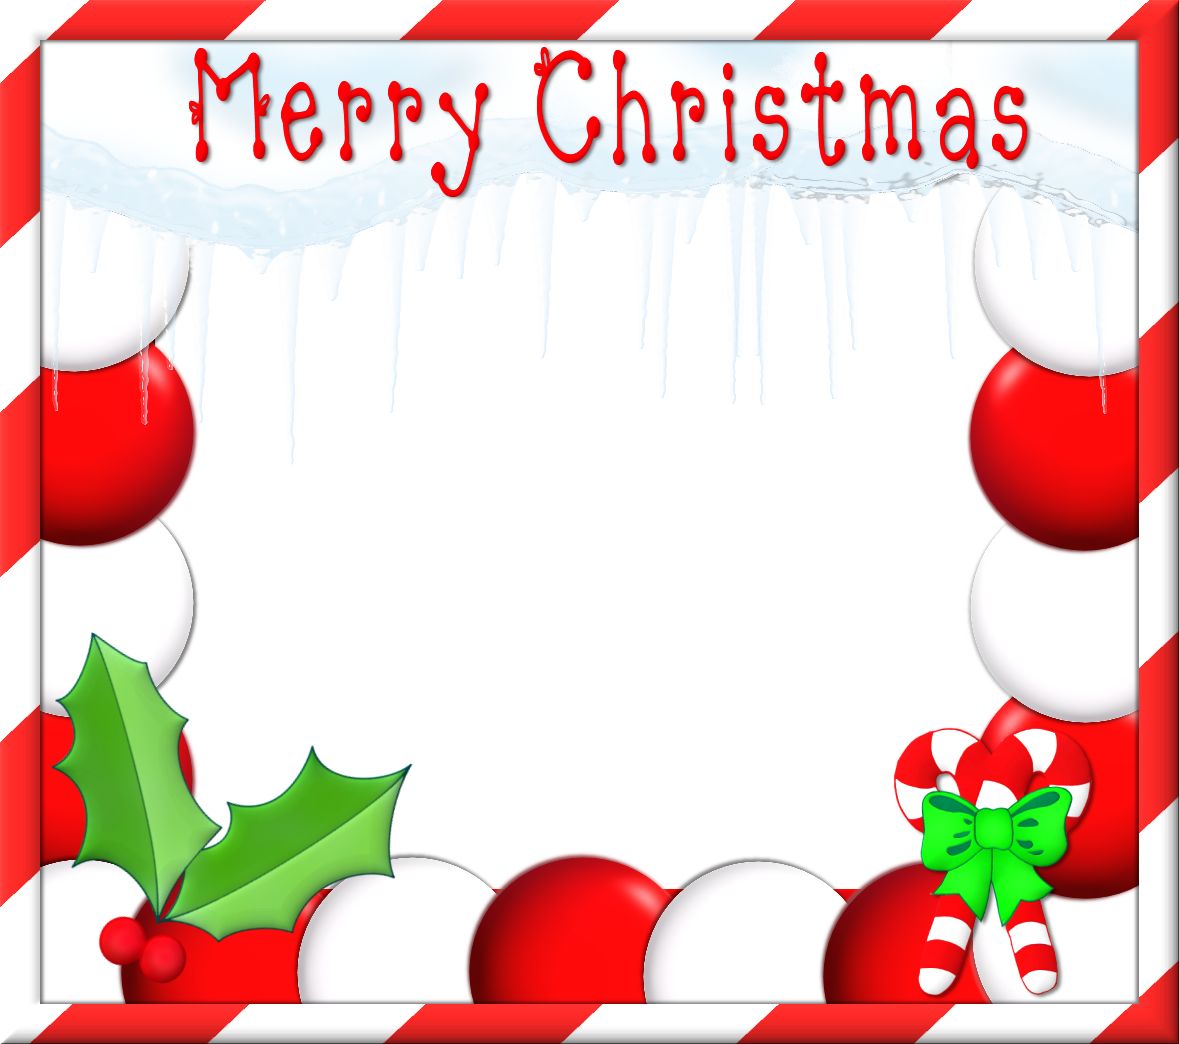 Christmas Free Clip Art Borders - Cliparts.co